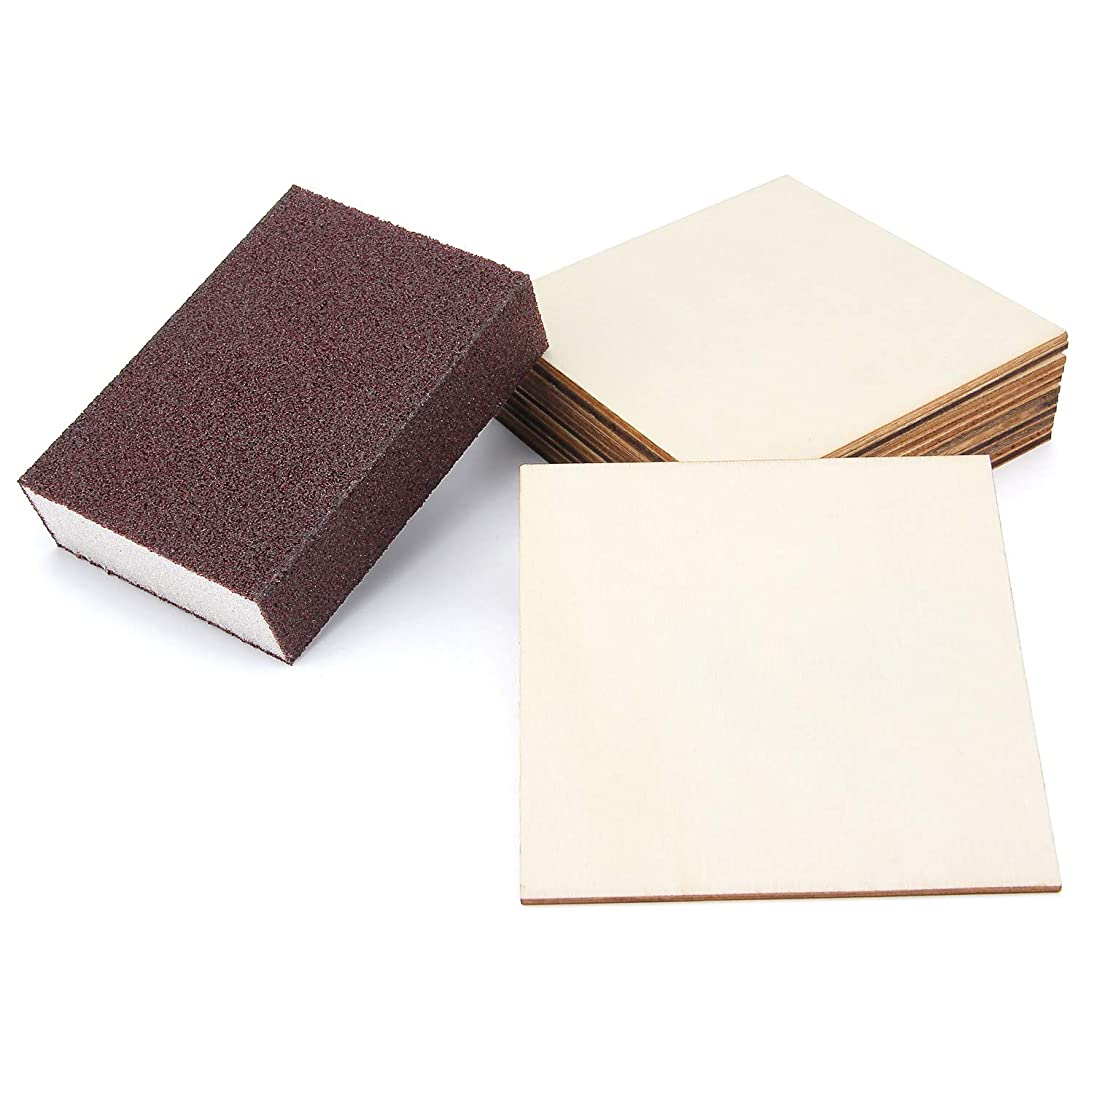 12 Pieces 4 Inch Unfinished Wood Plaques with Sanding Sponge, Blank Wood Pieces, Square Wood Drink Coasters, Blank Wood Signs for Painting, Writing, DIY Supplies, Engraving, Home Decorations